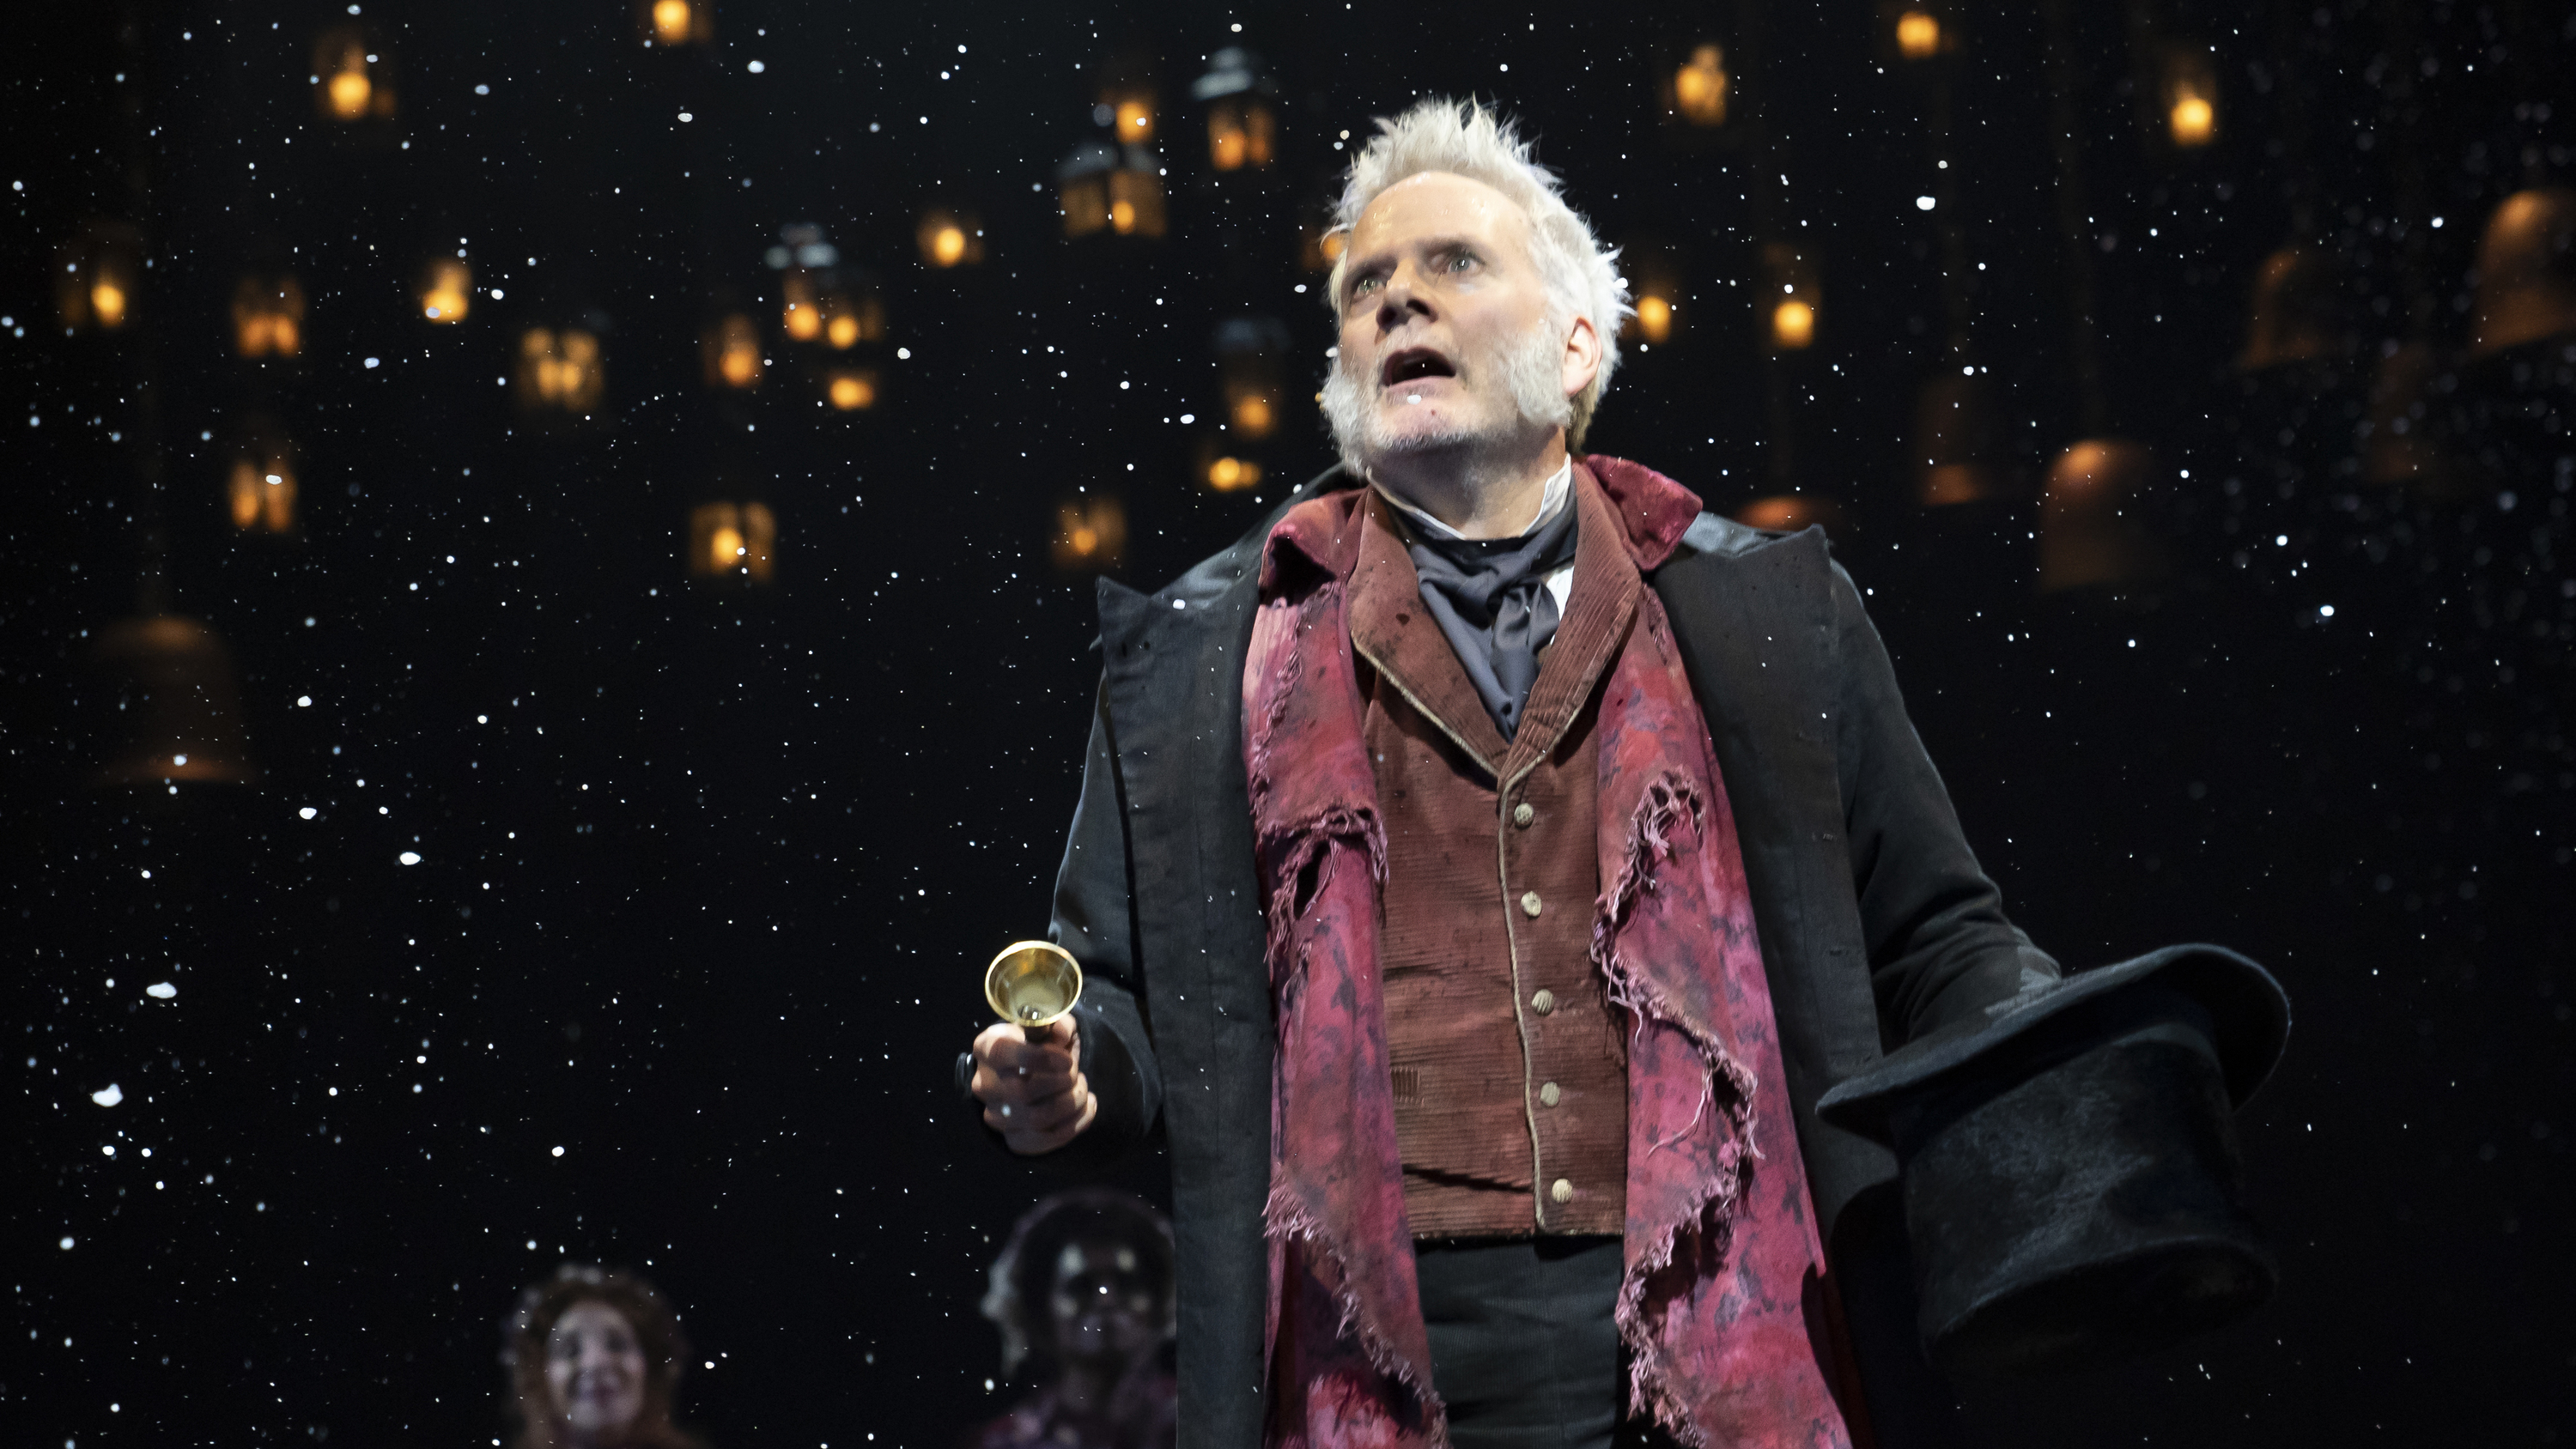 Where to see A Christmas Carol in 2019